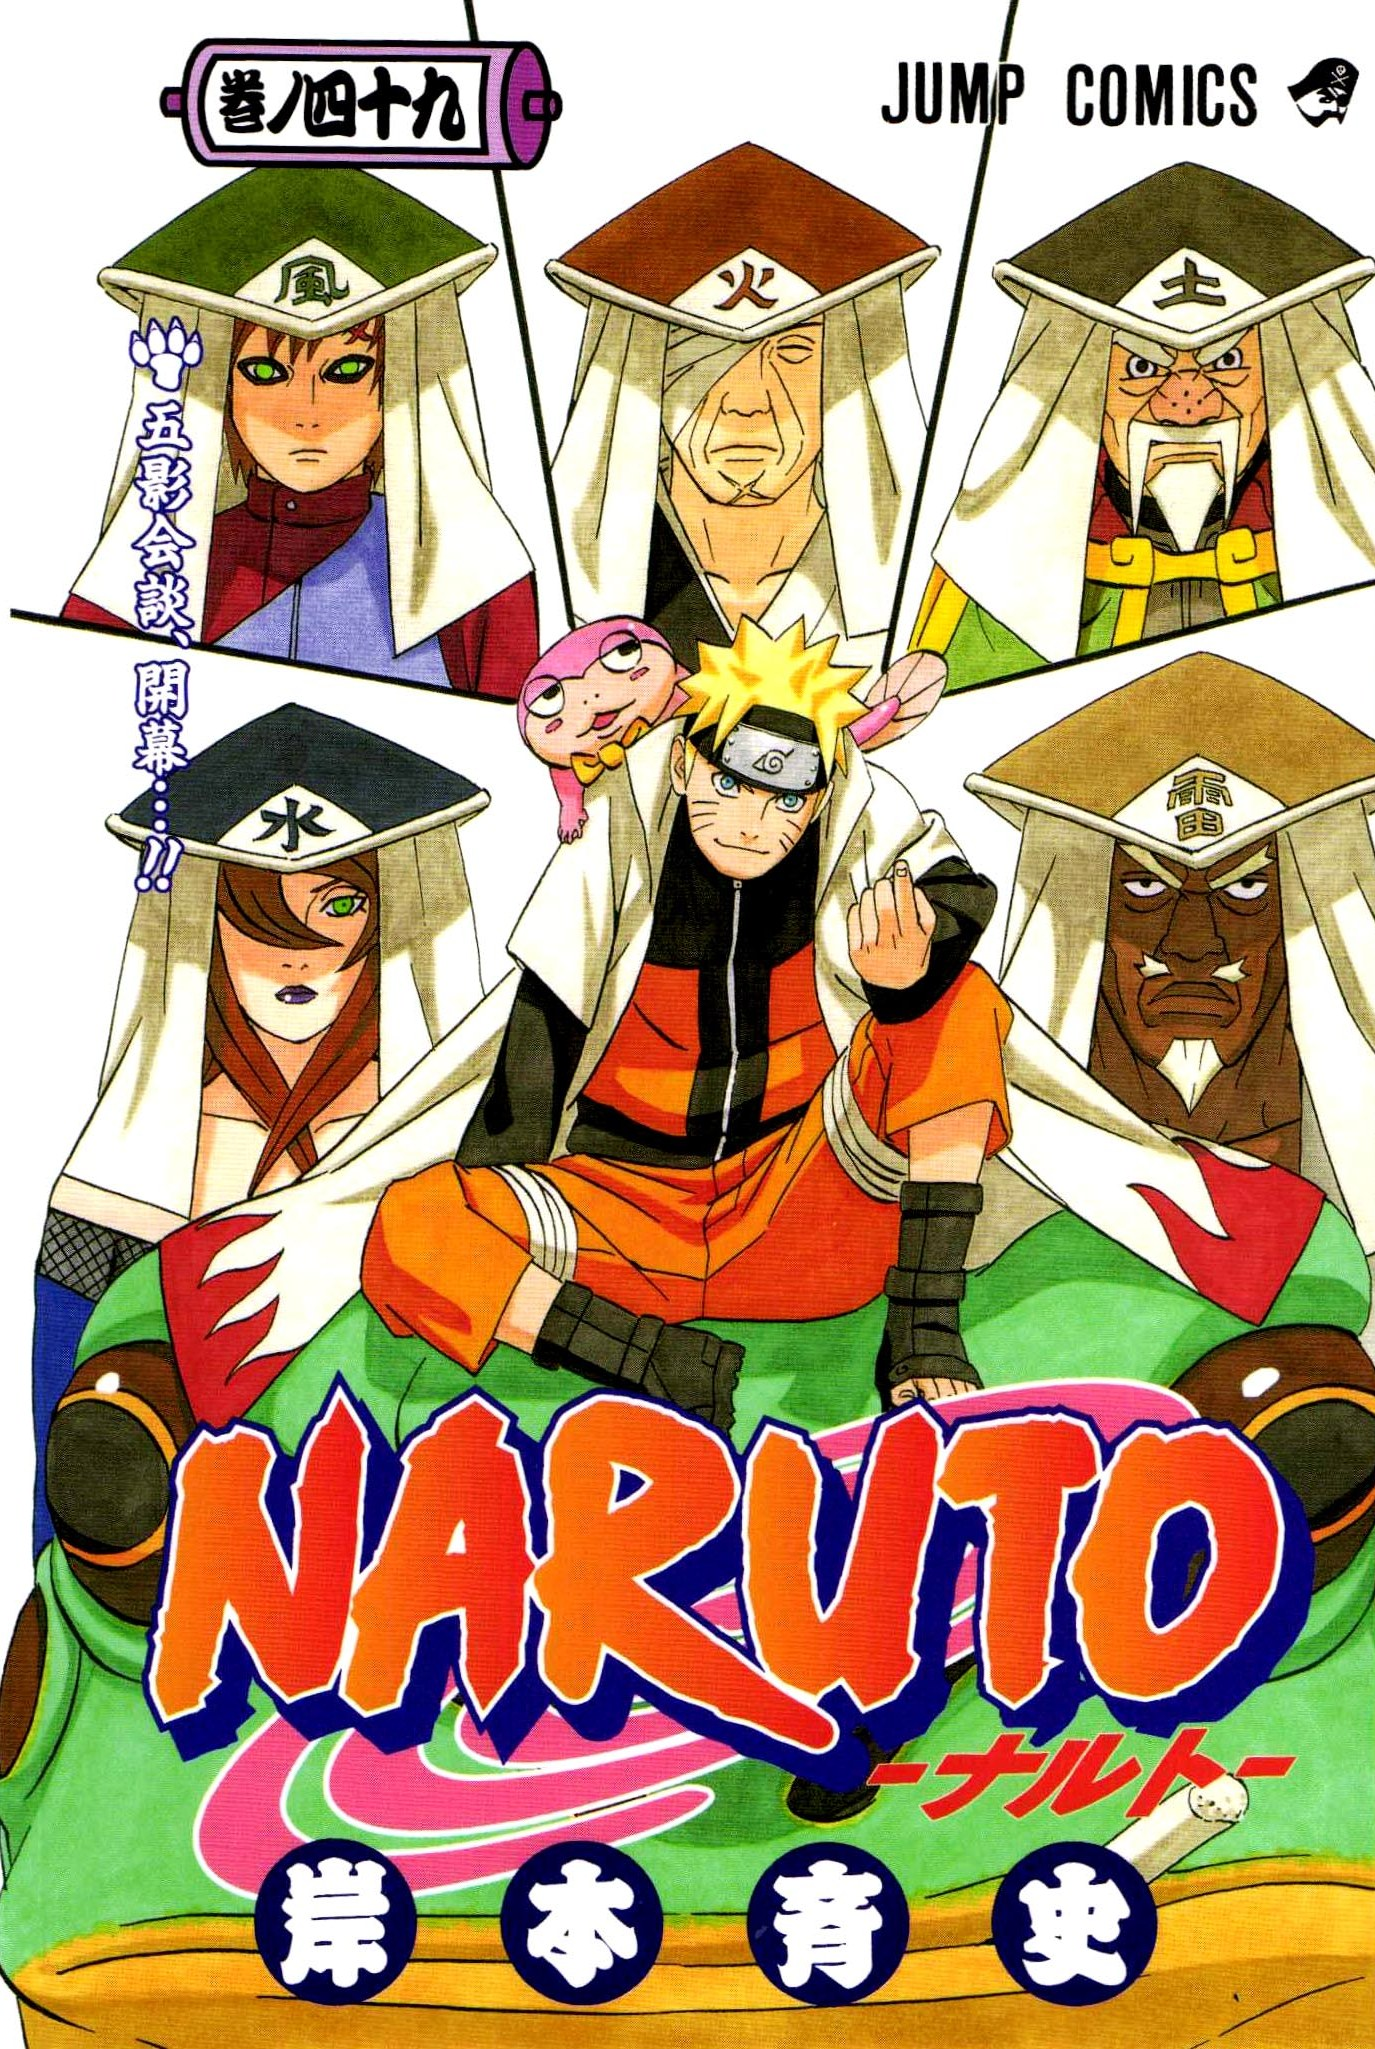 http://fc06.deviantart.net/fs71/f/2010/023/9/f/Naruto_vol__49_cover_by_Thecmelion.jpg